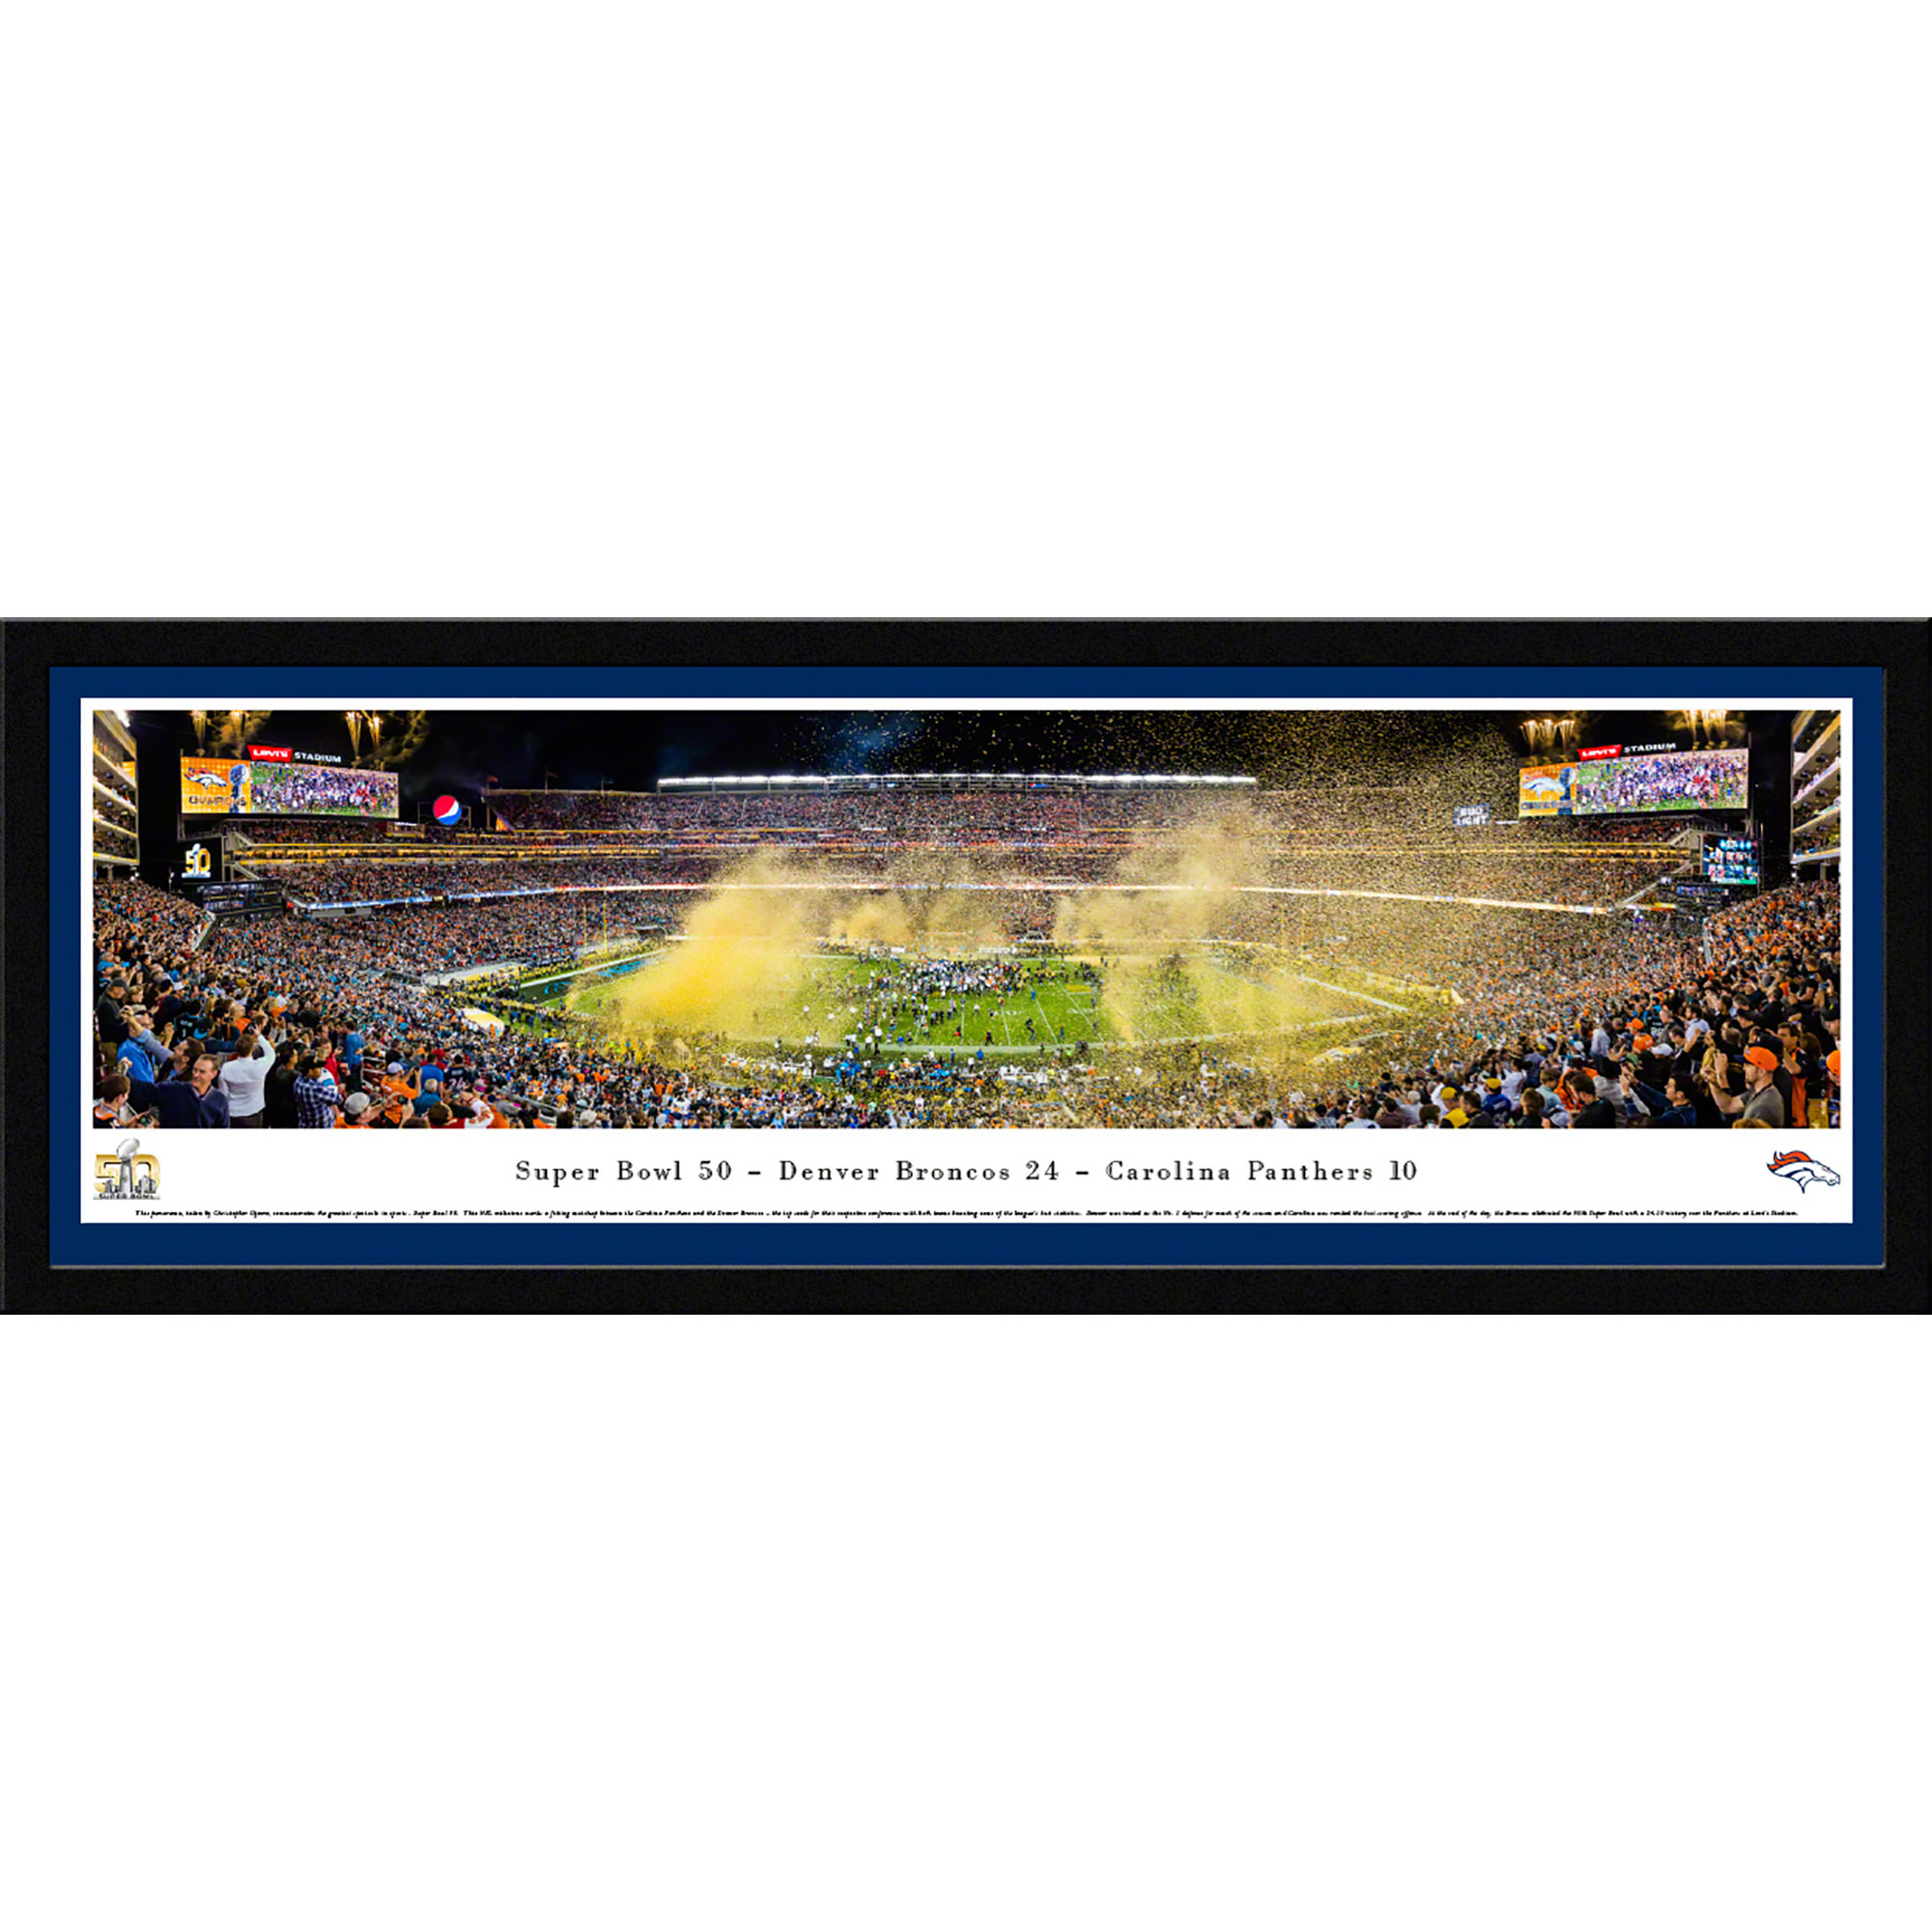 Super Bowl 50 - Denver Broncos Champions - Blakeway Panoramas NFL Print with Select Frame and Single Mat